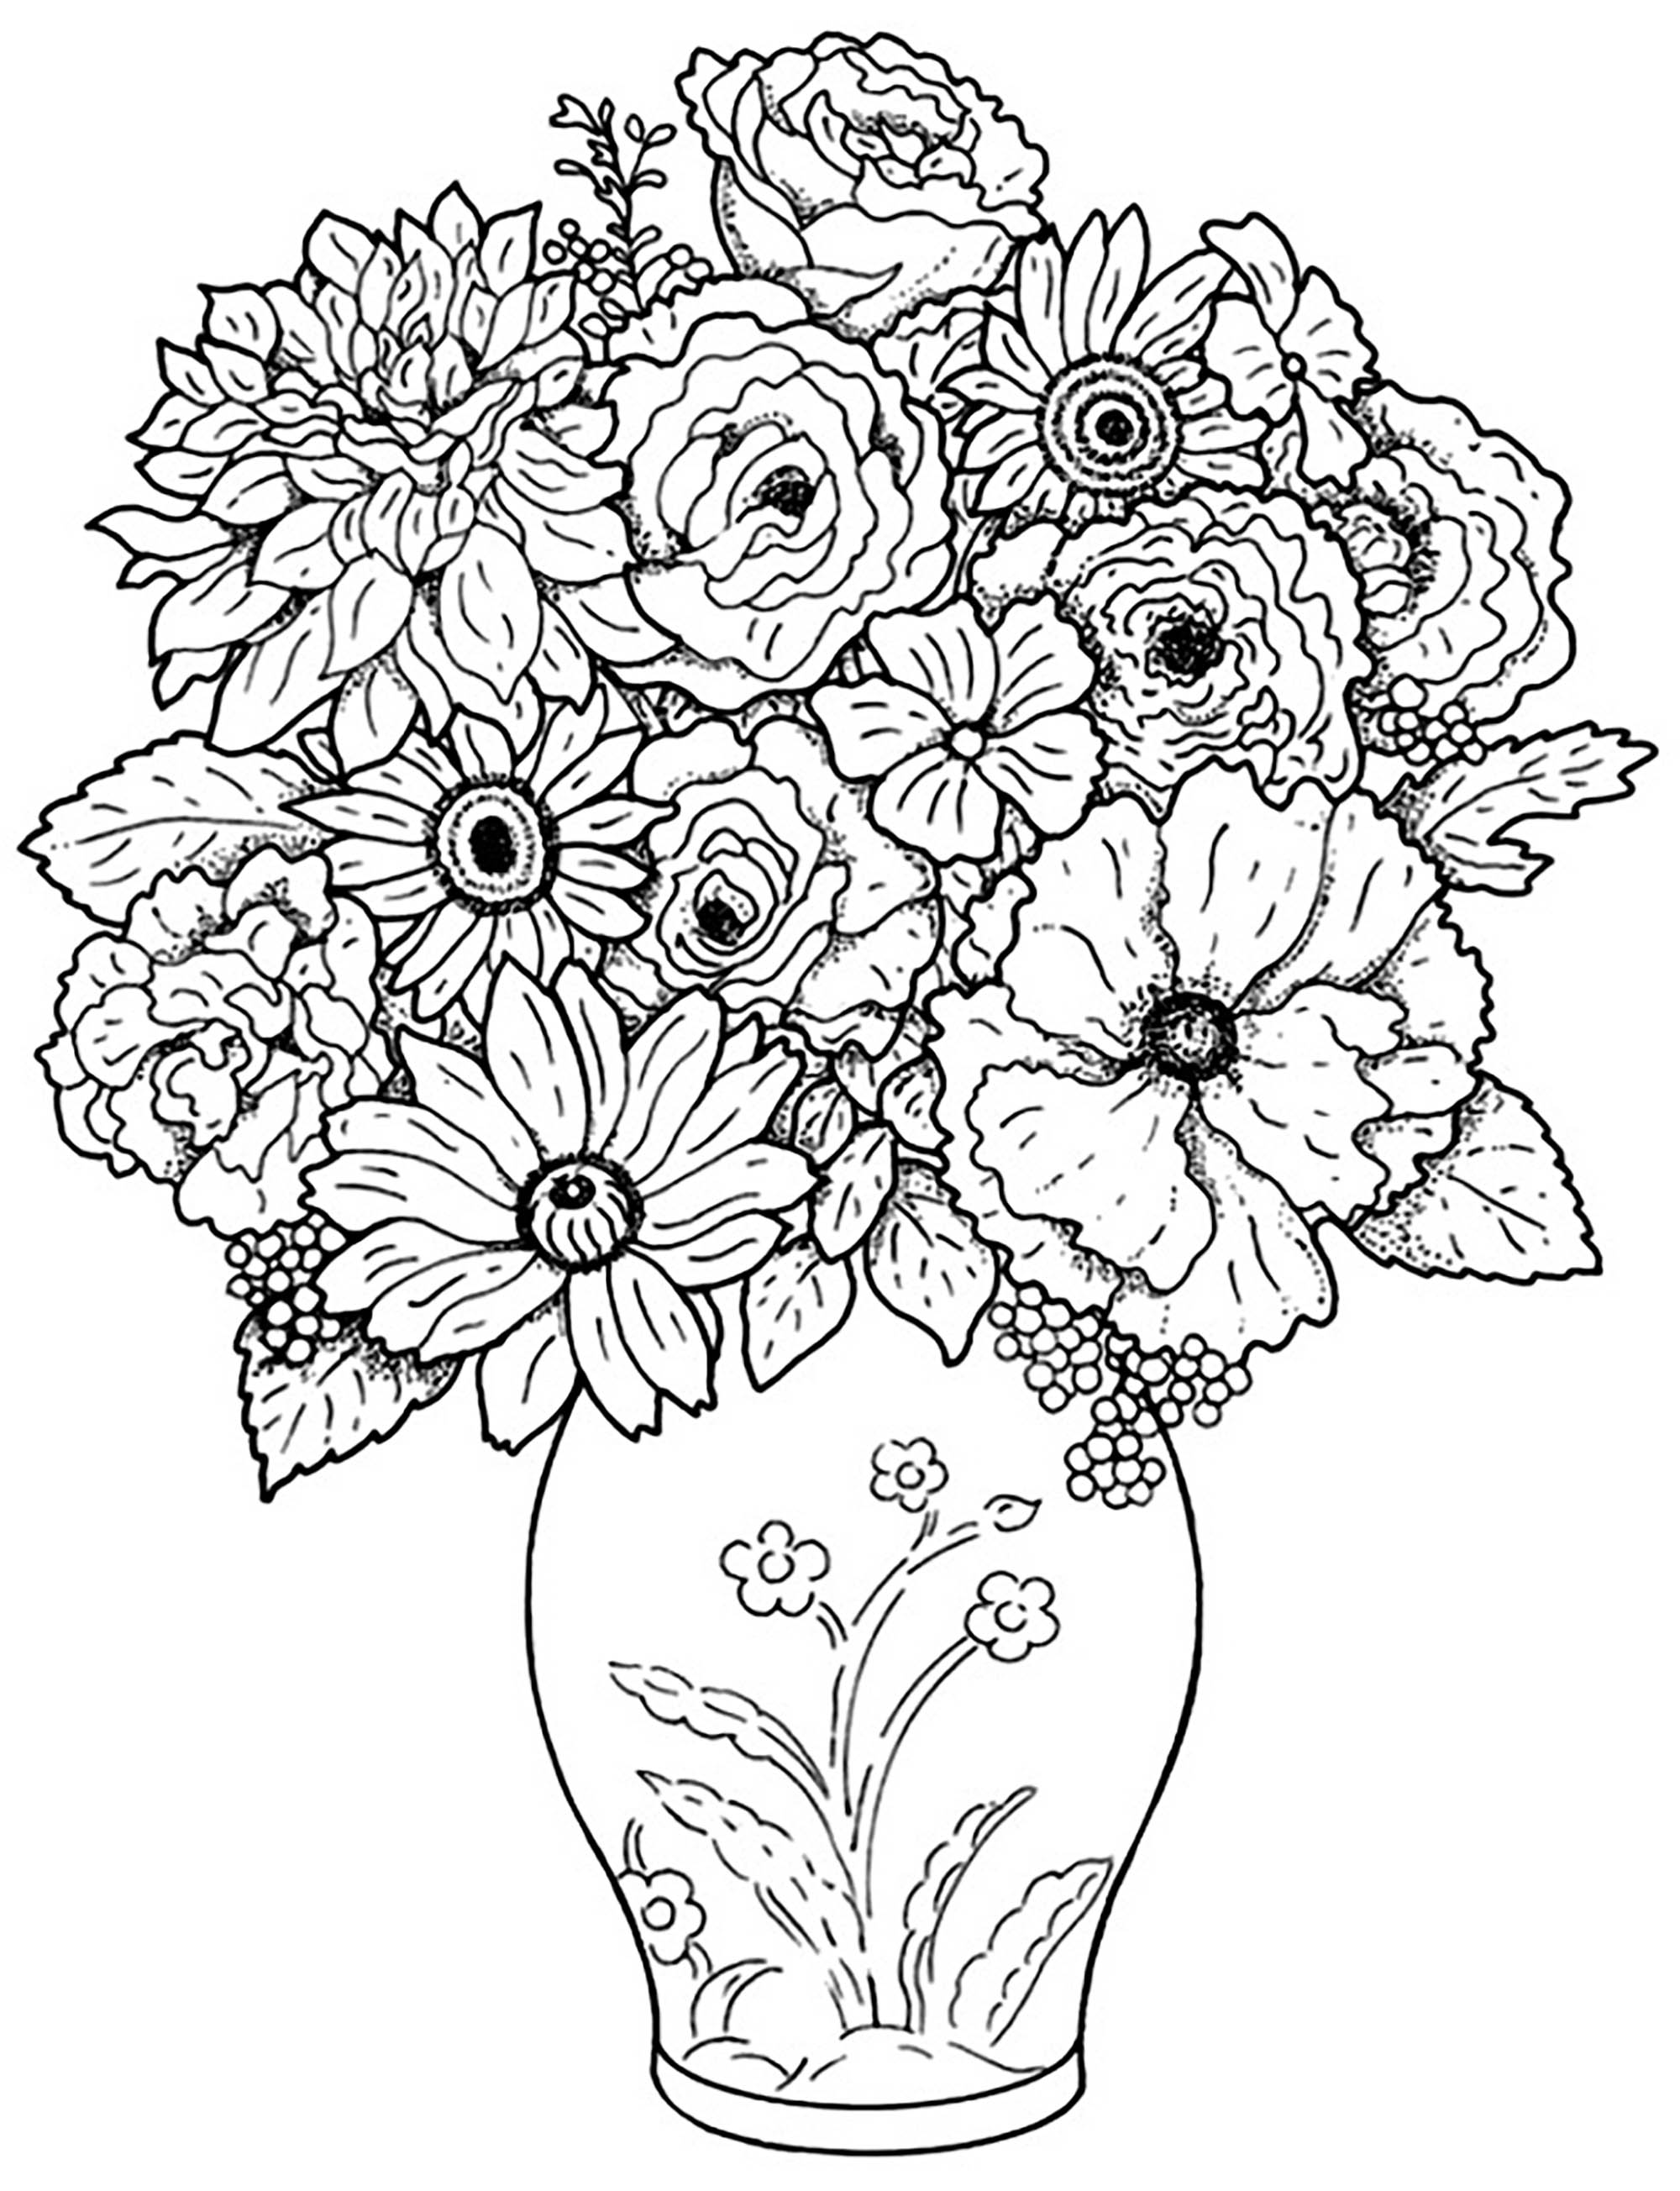 flower coloring pages for kids free printable flower coloring pages for kids best flower coloring for pages kids